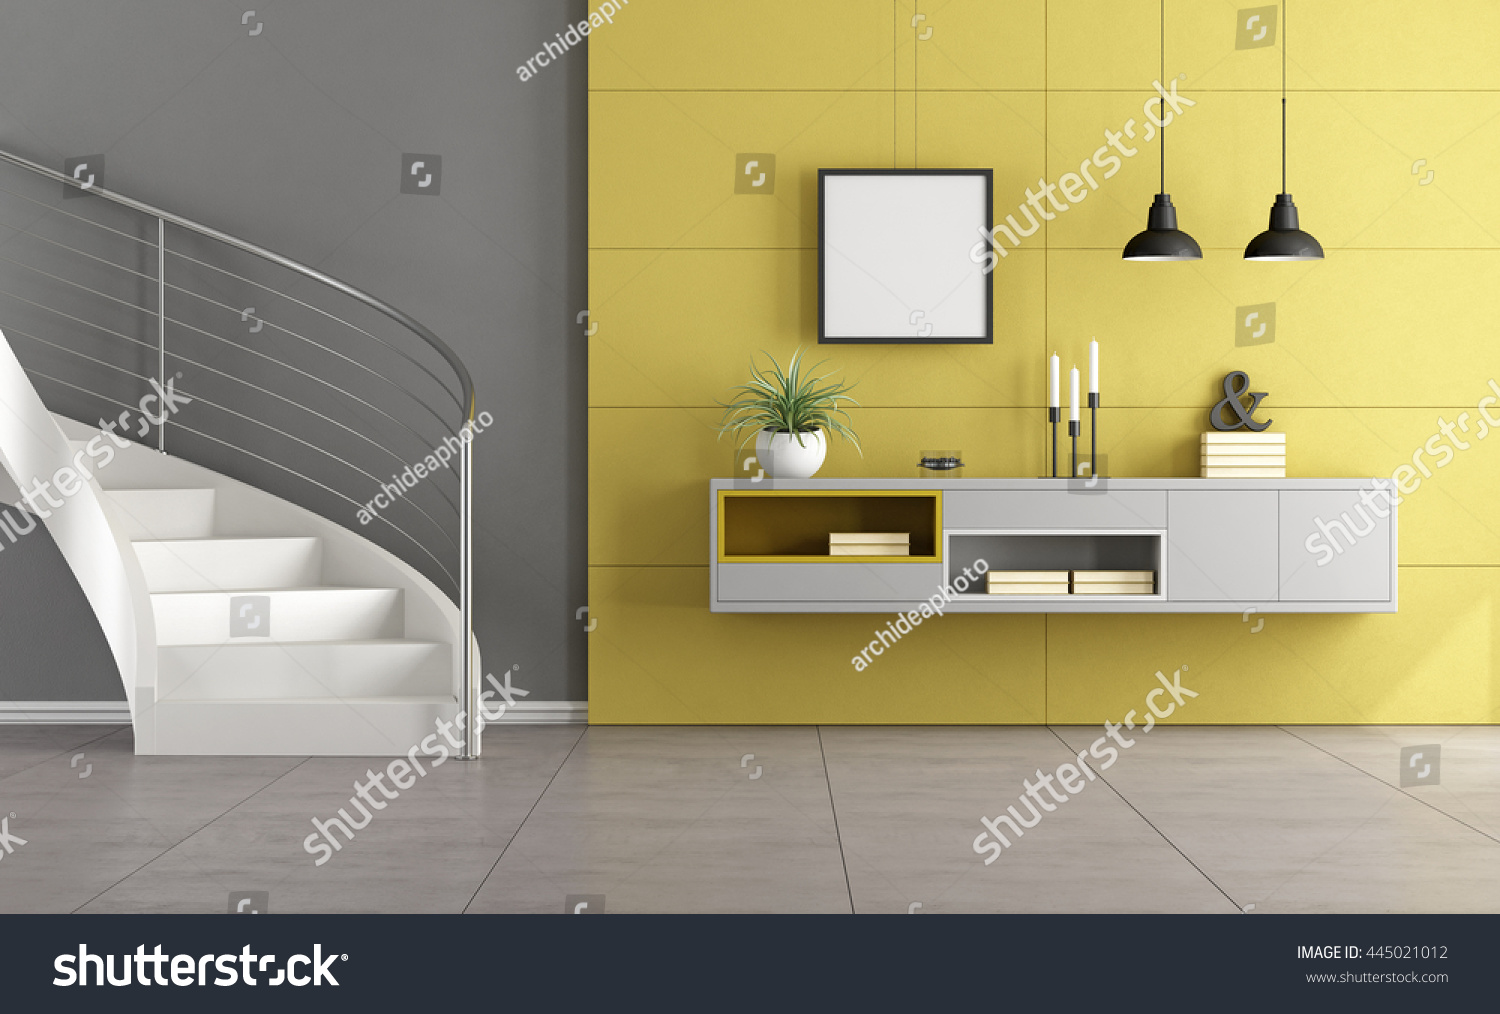 White Stair Minimalist Living Room Gray Stock Illustration 445021012 ...